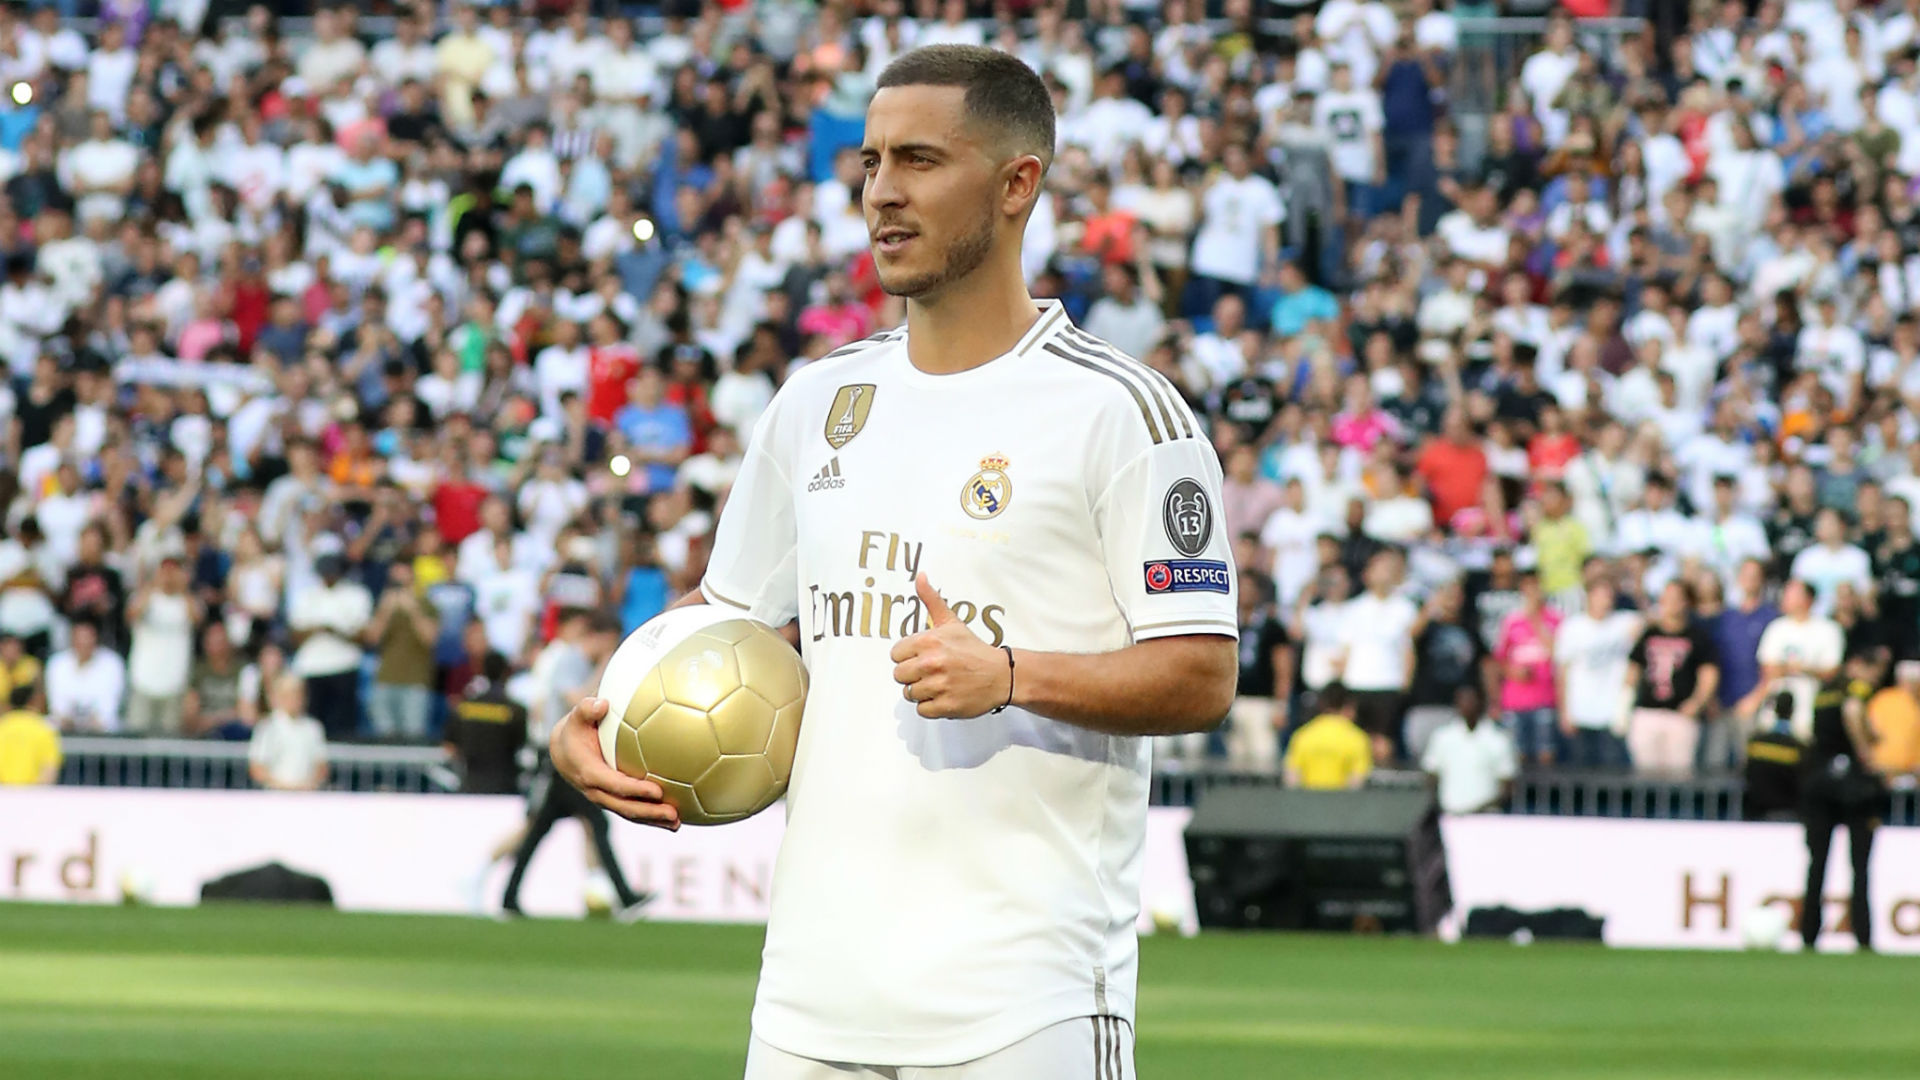 I'm not a Galactico yet, says new Real Madrid signing Hazard